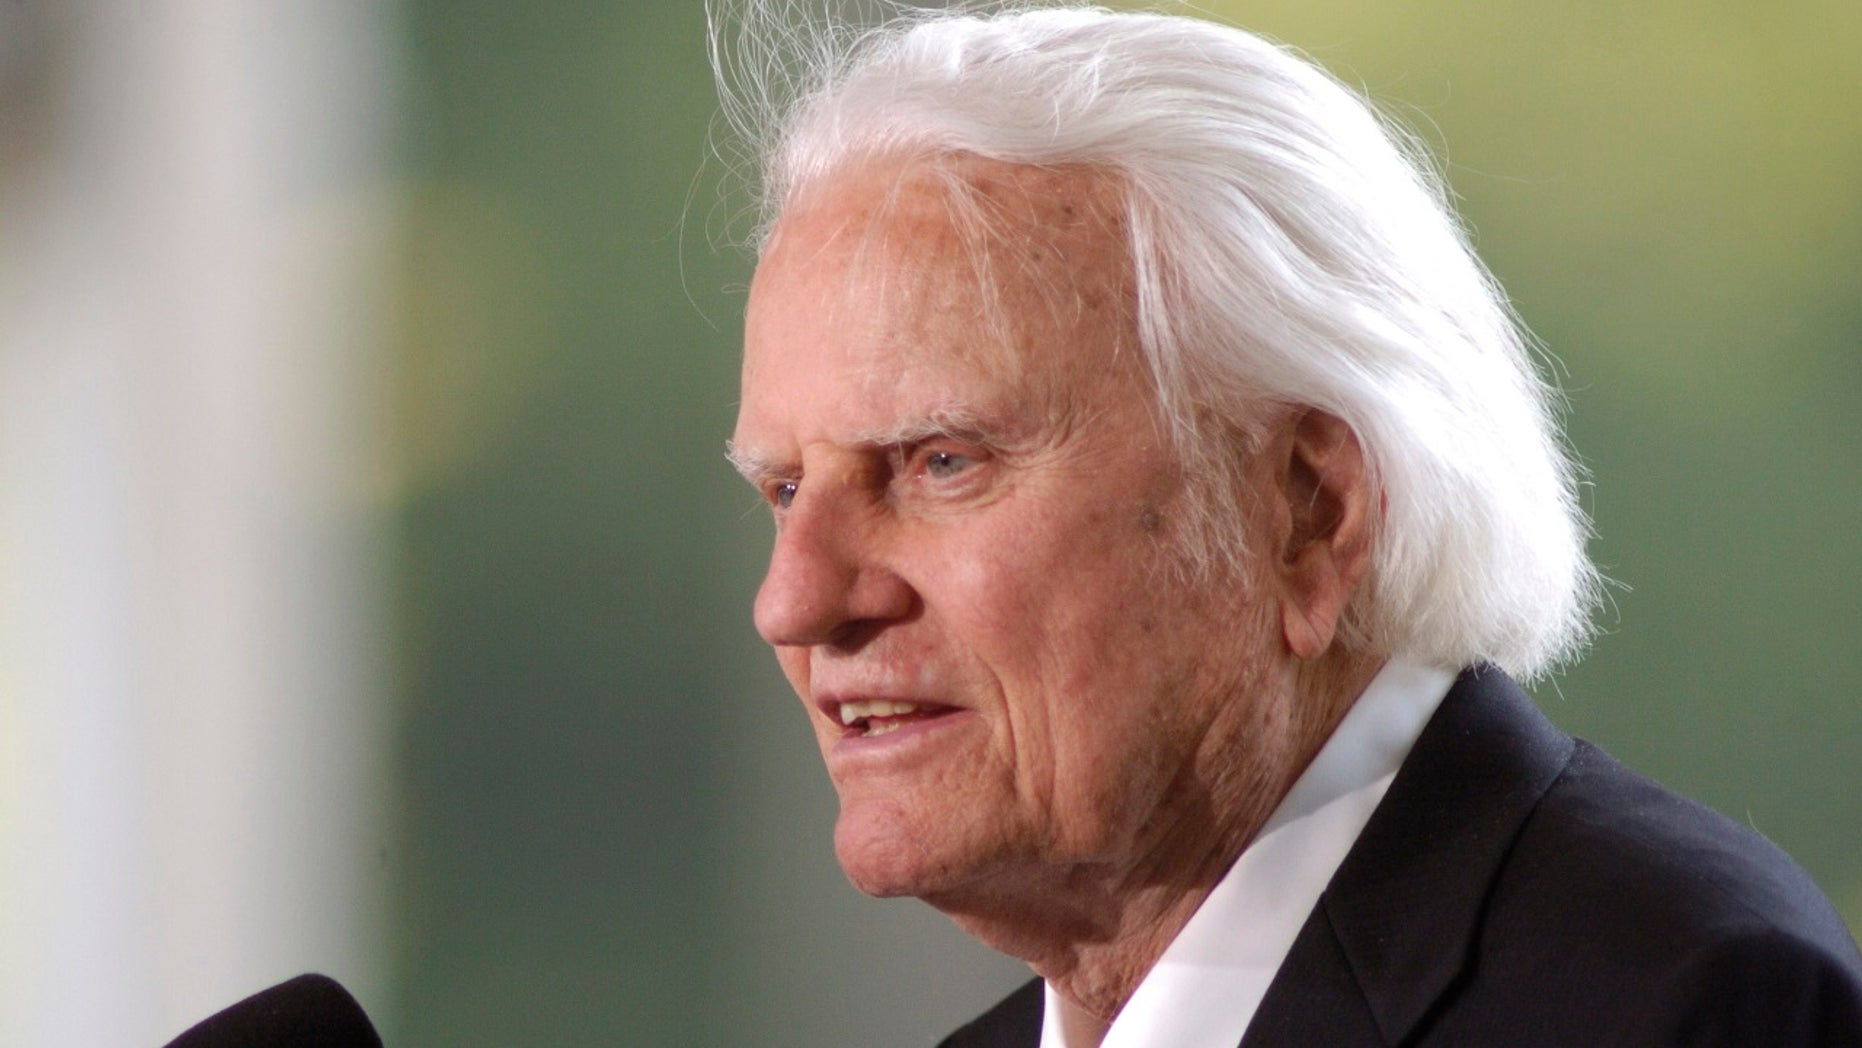 Evangelist Billy Graham speaks at the dedication of the Billy Graham Library in Charlotte, N.C., May 31, 2007.